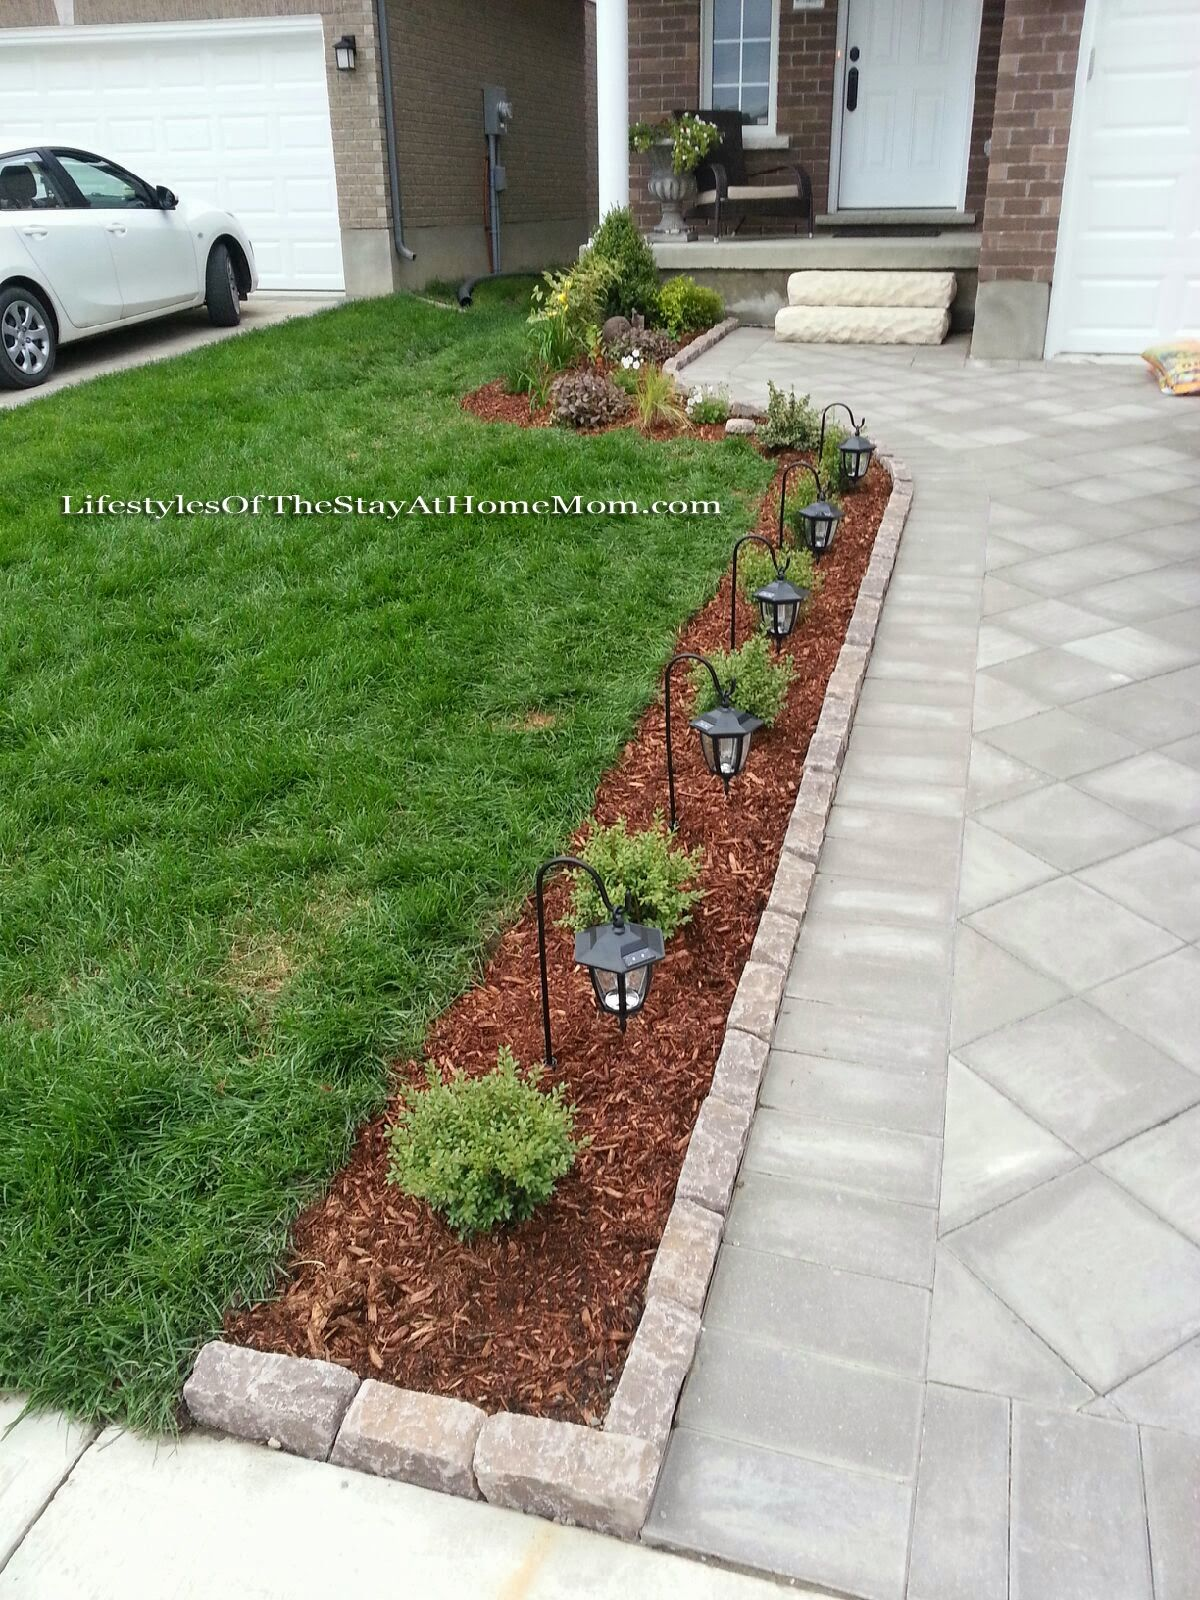 Front yard driveway landscaping ideas  Curb Appeal brick pavers on end to line a small flower bed along